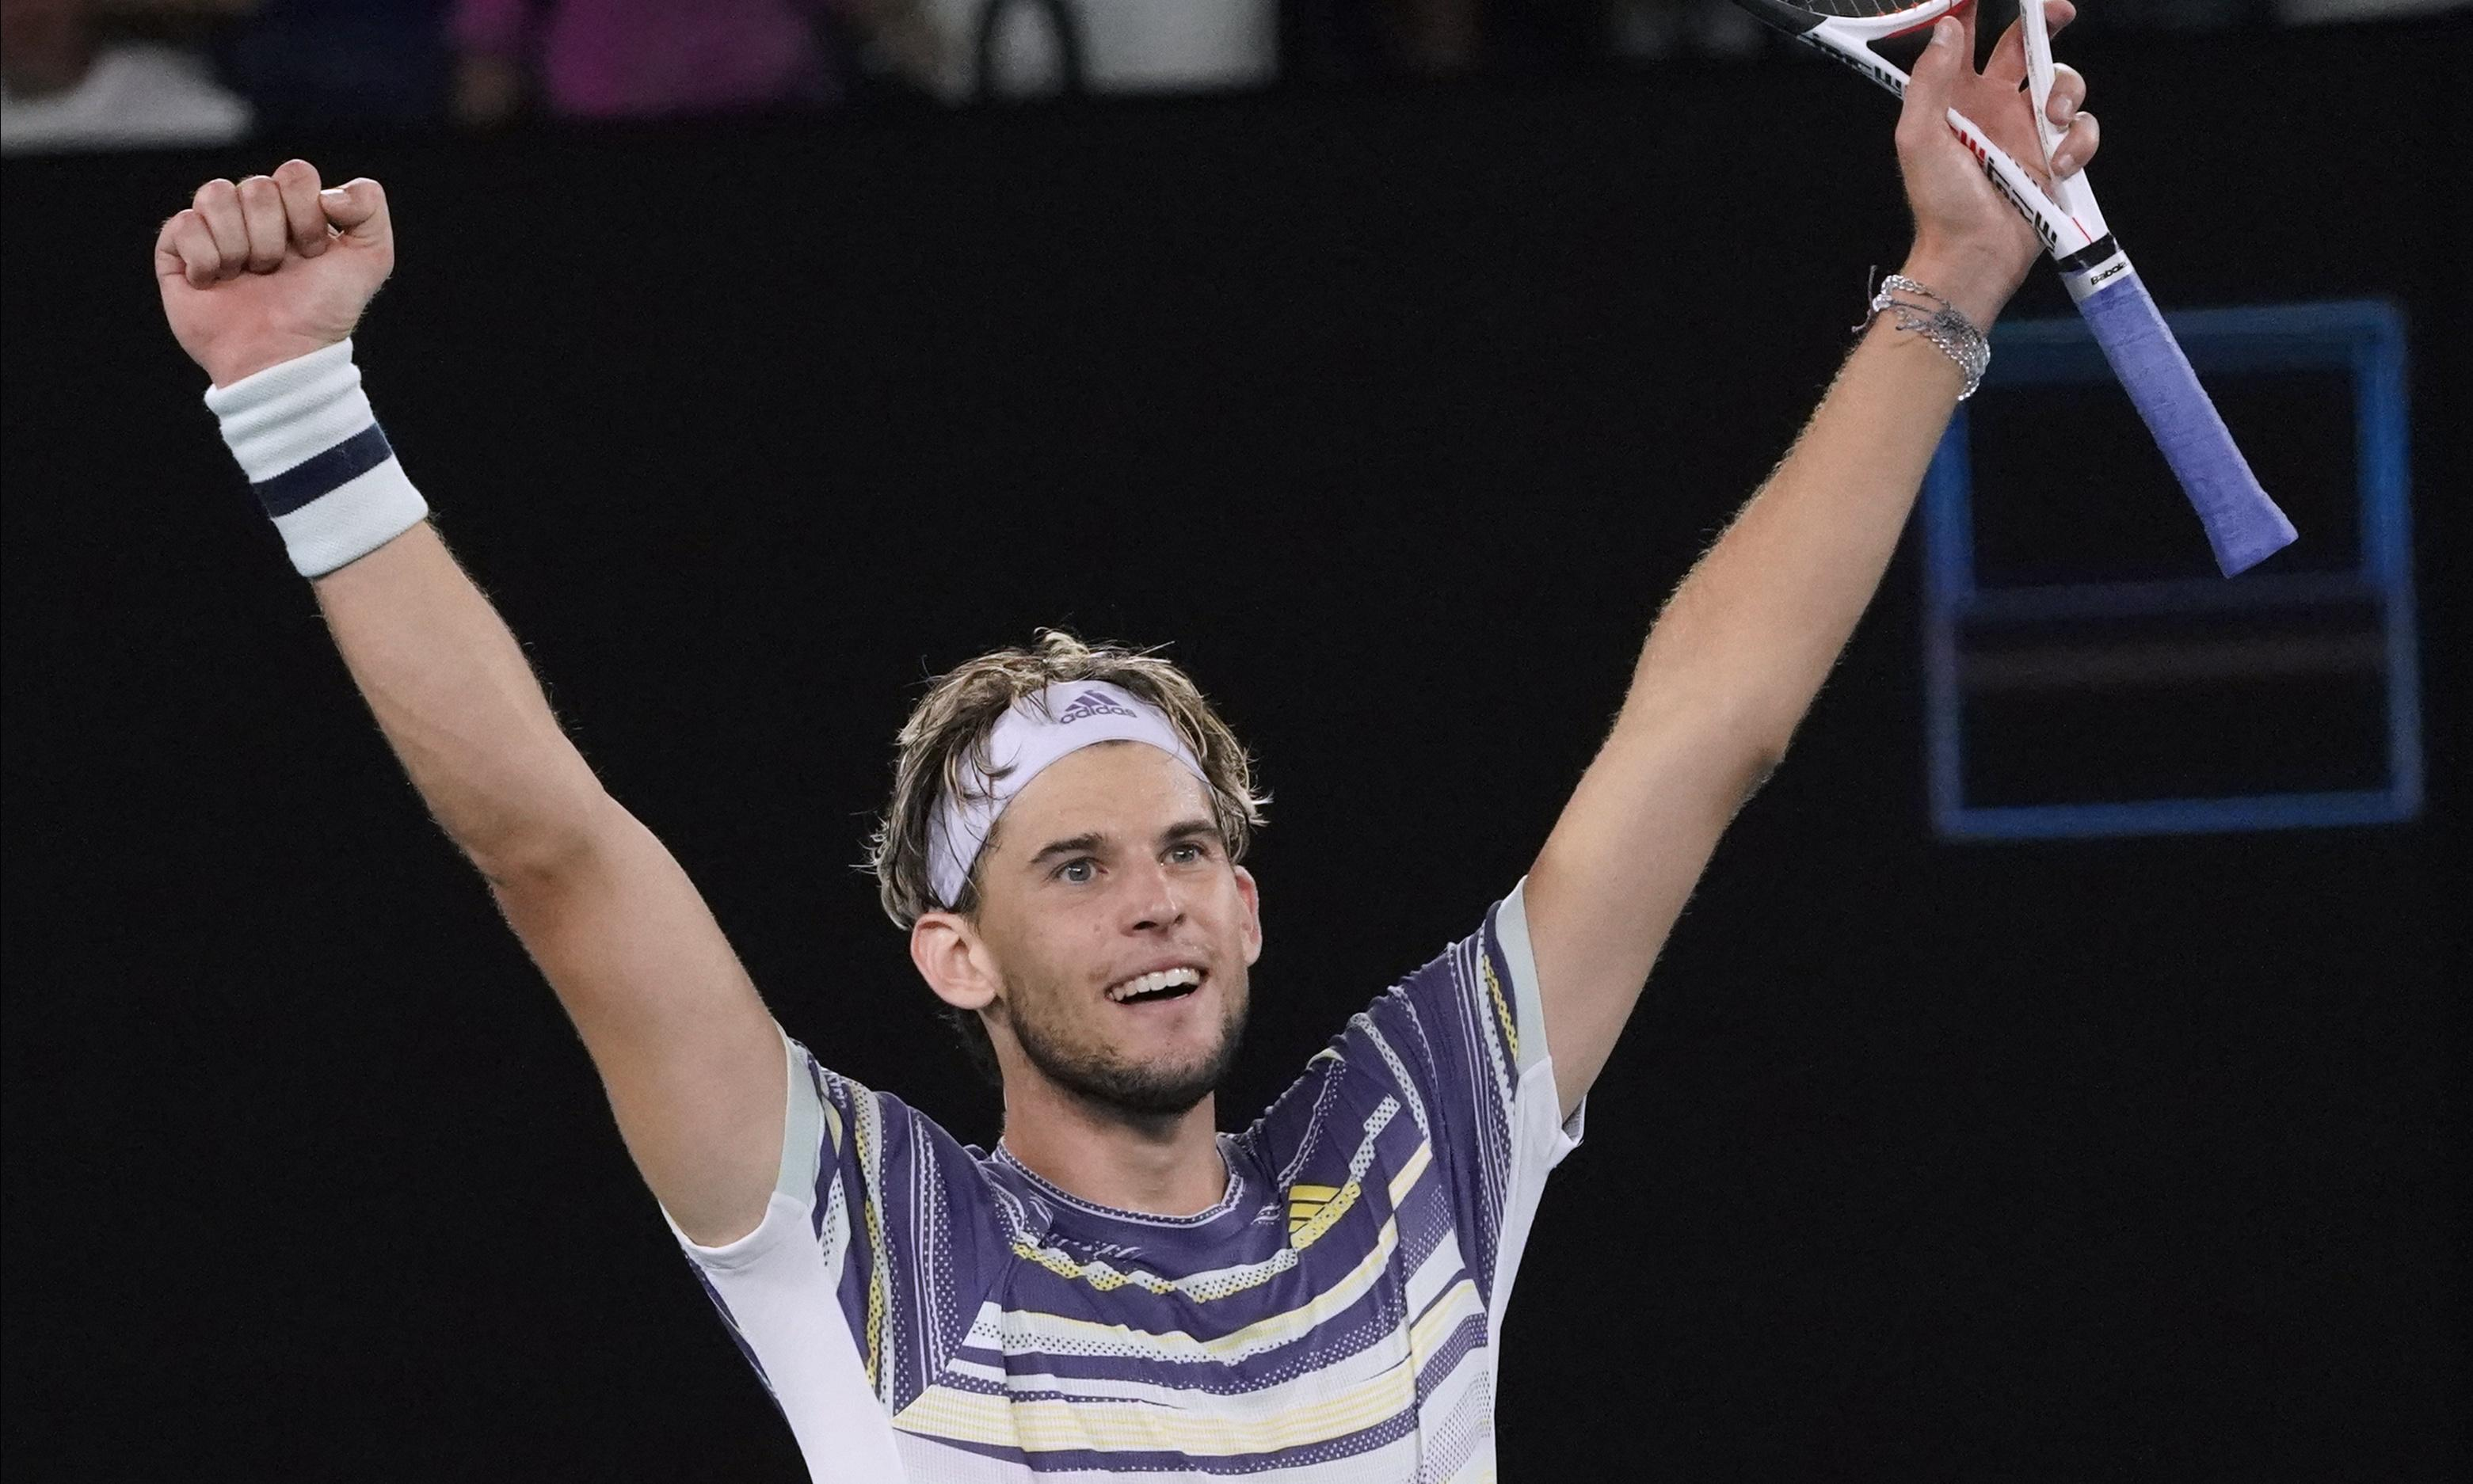 No room for sentiment in Dominic Thiem's pursuit of Djokovic's crown